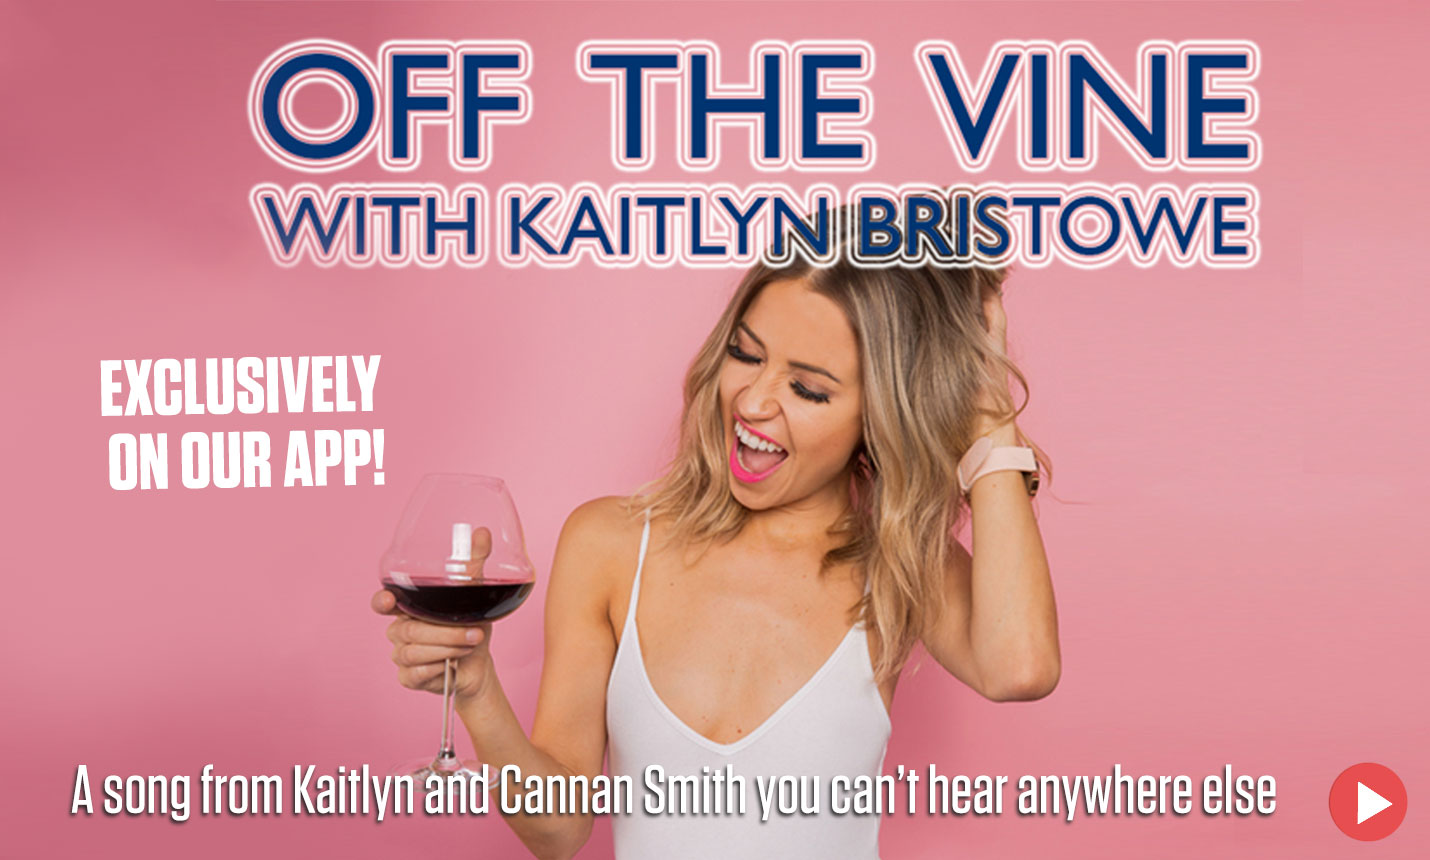 Kaitlyn Bristowe: Off the Vine